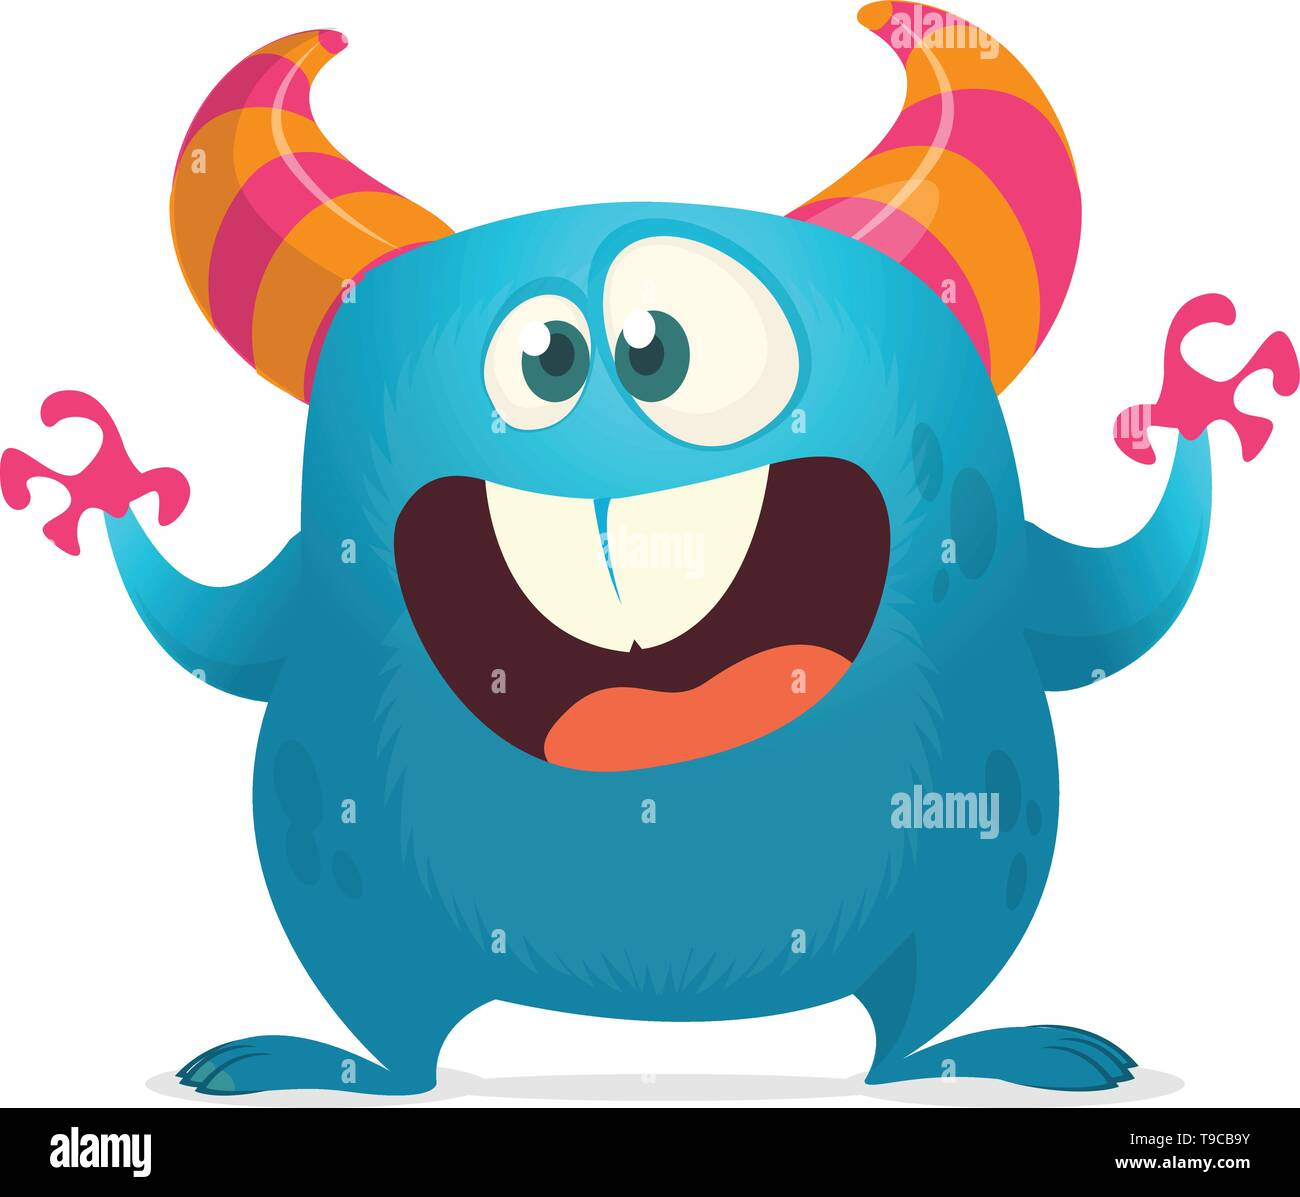 Funny cartoon monster with big teeth. Vector blue monster illustration with hands up. Halloween design - Stock Image